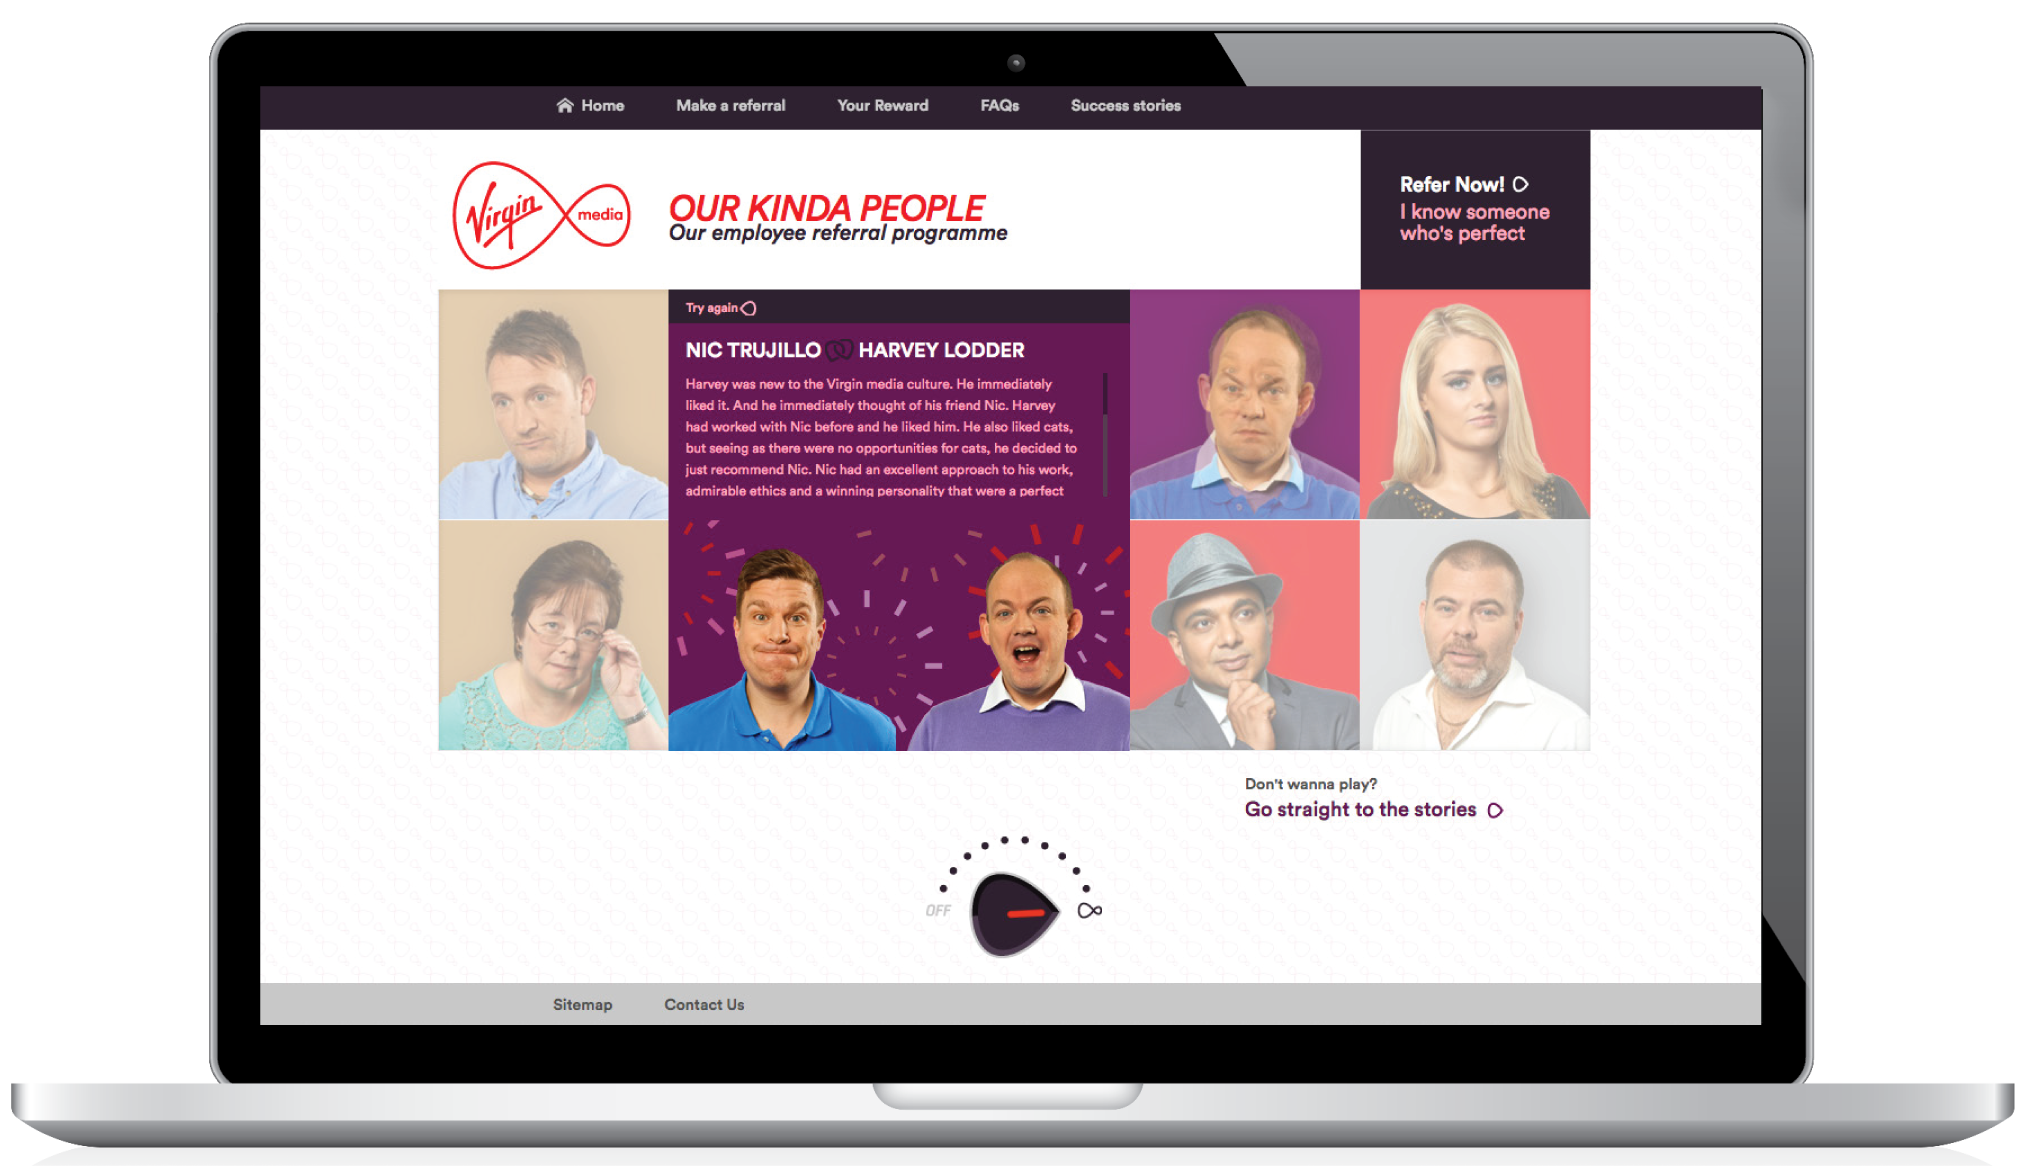 virgin media employee referral program website